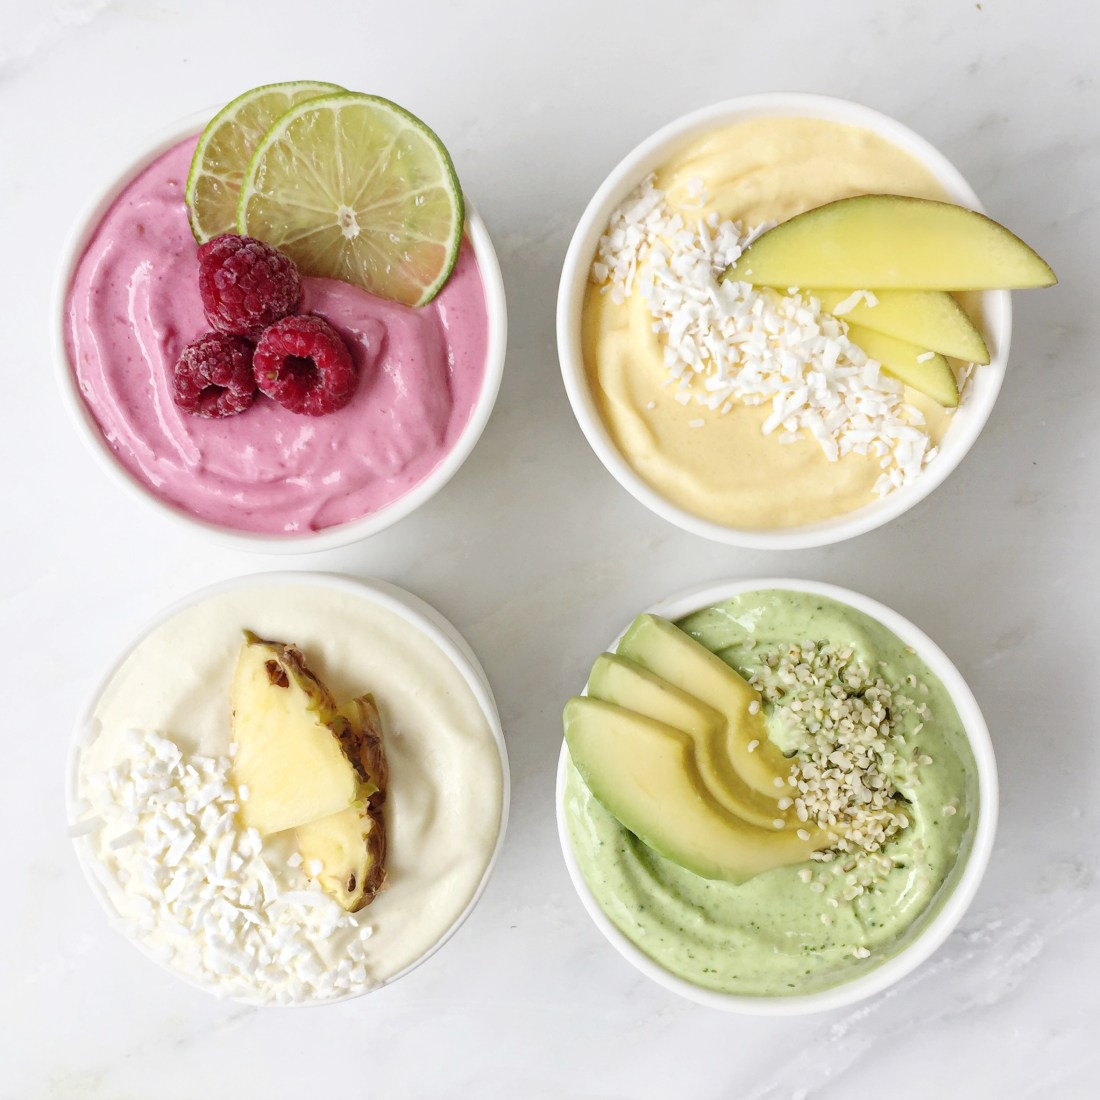 Pastel Bikini Smoothie Bowls by Fraiche Nutrition made with Genuine Health Protein Powder